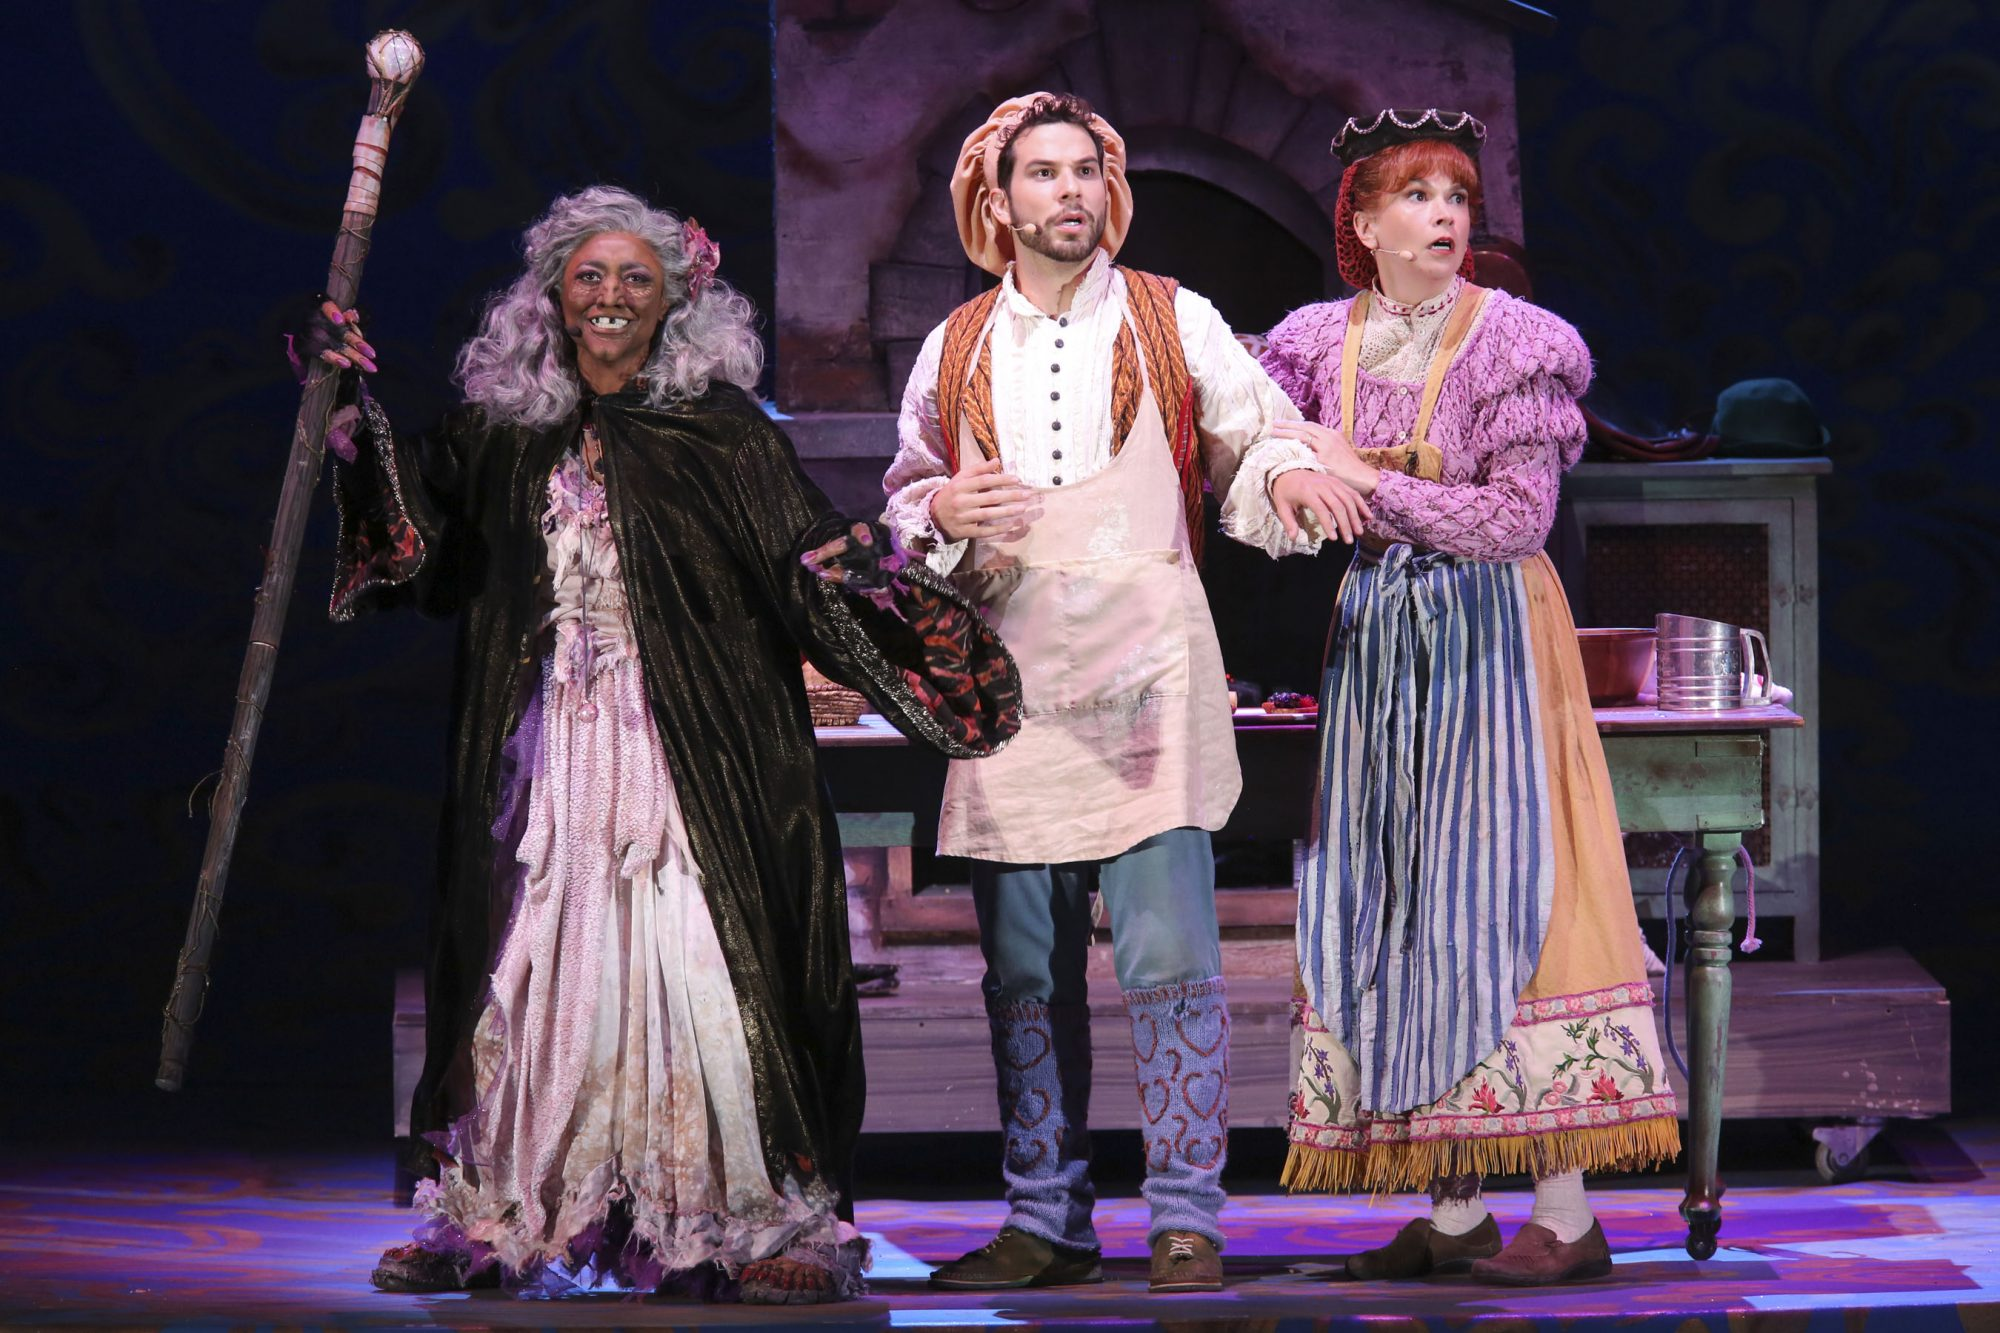 Hollywood Bowl Presents Into The Woods 2019 -- Pictured: Patina Miller as The Witch, Skylar Astin as The Baker, Sutton Foster as The Baker's Wife Photos by Craig T. Mathew and Greg Grudt/Mathew Imaging If these photos will be used on Social Media, please be sure to tag the following: @mathewimaging